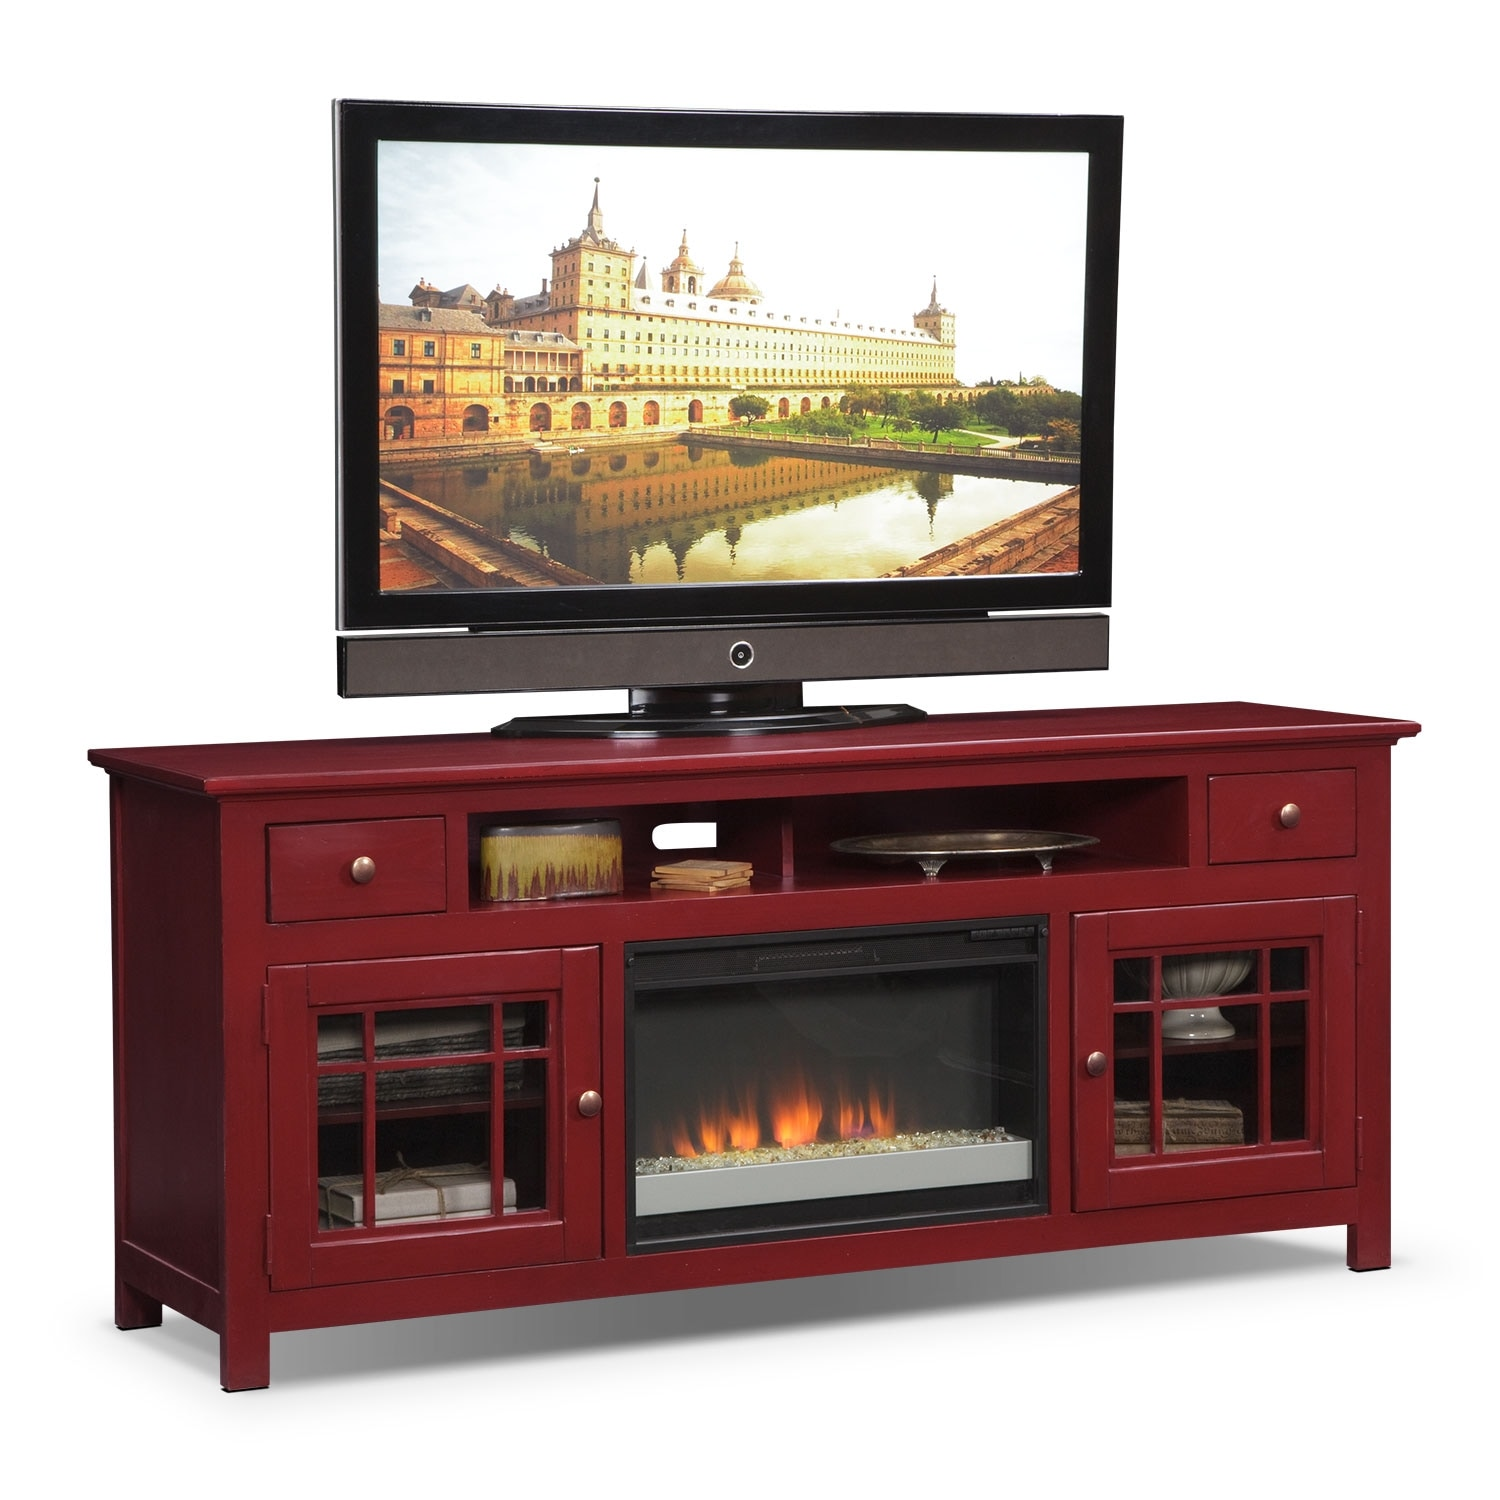 merrick 74 quot fireplace tv stand with contemporary